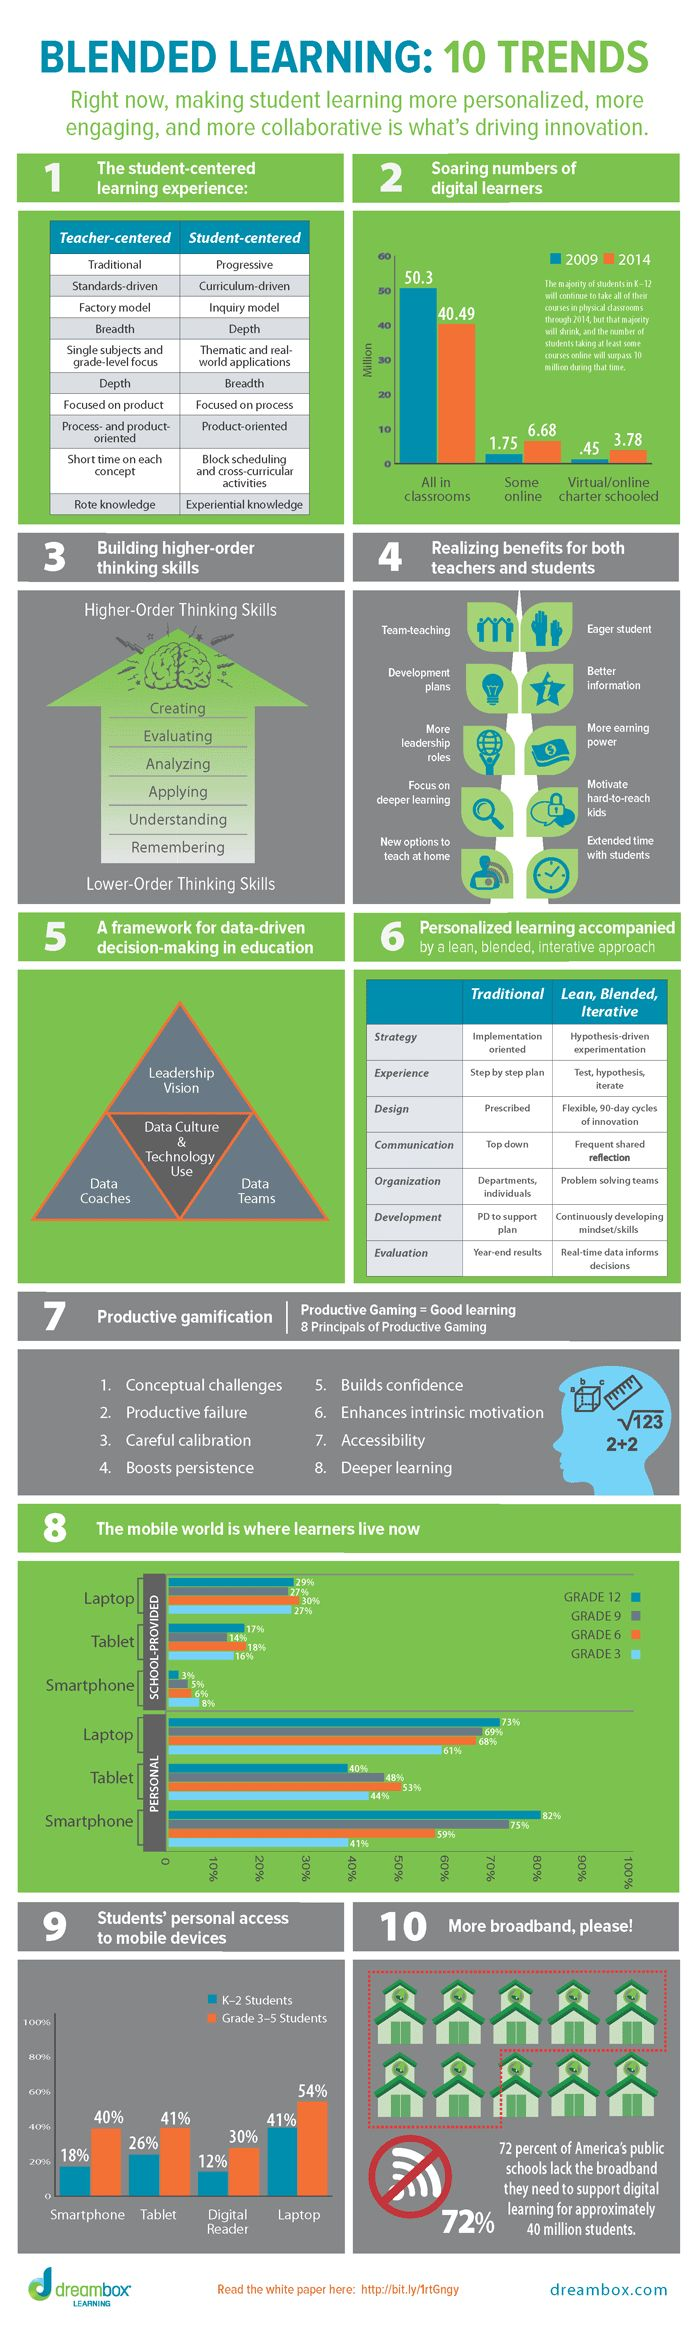 e-learning, conocimiento en red: Blended Learning: 10 Trends [infografía] [infographic]